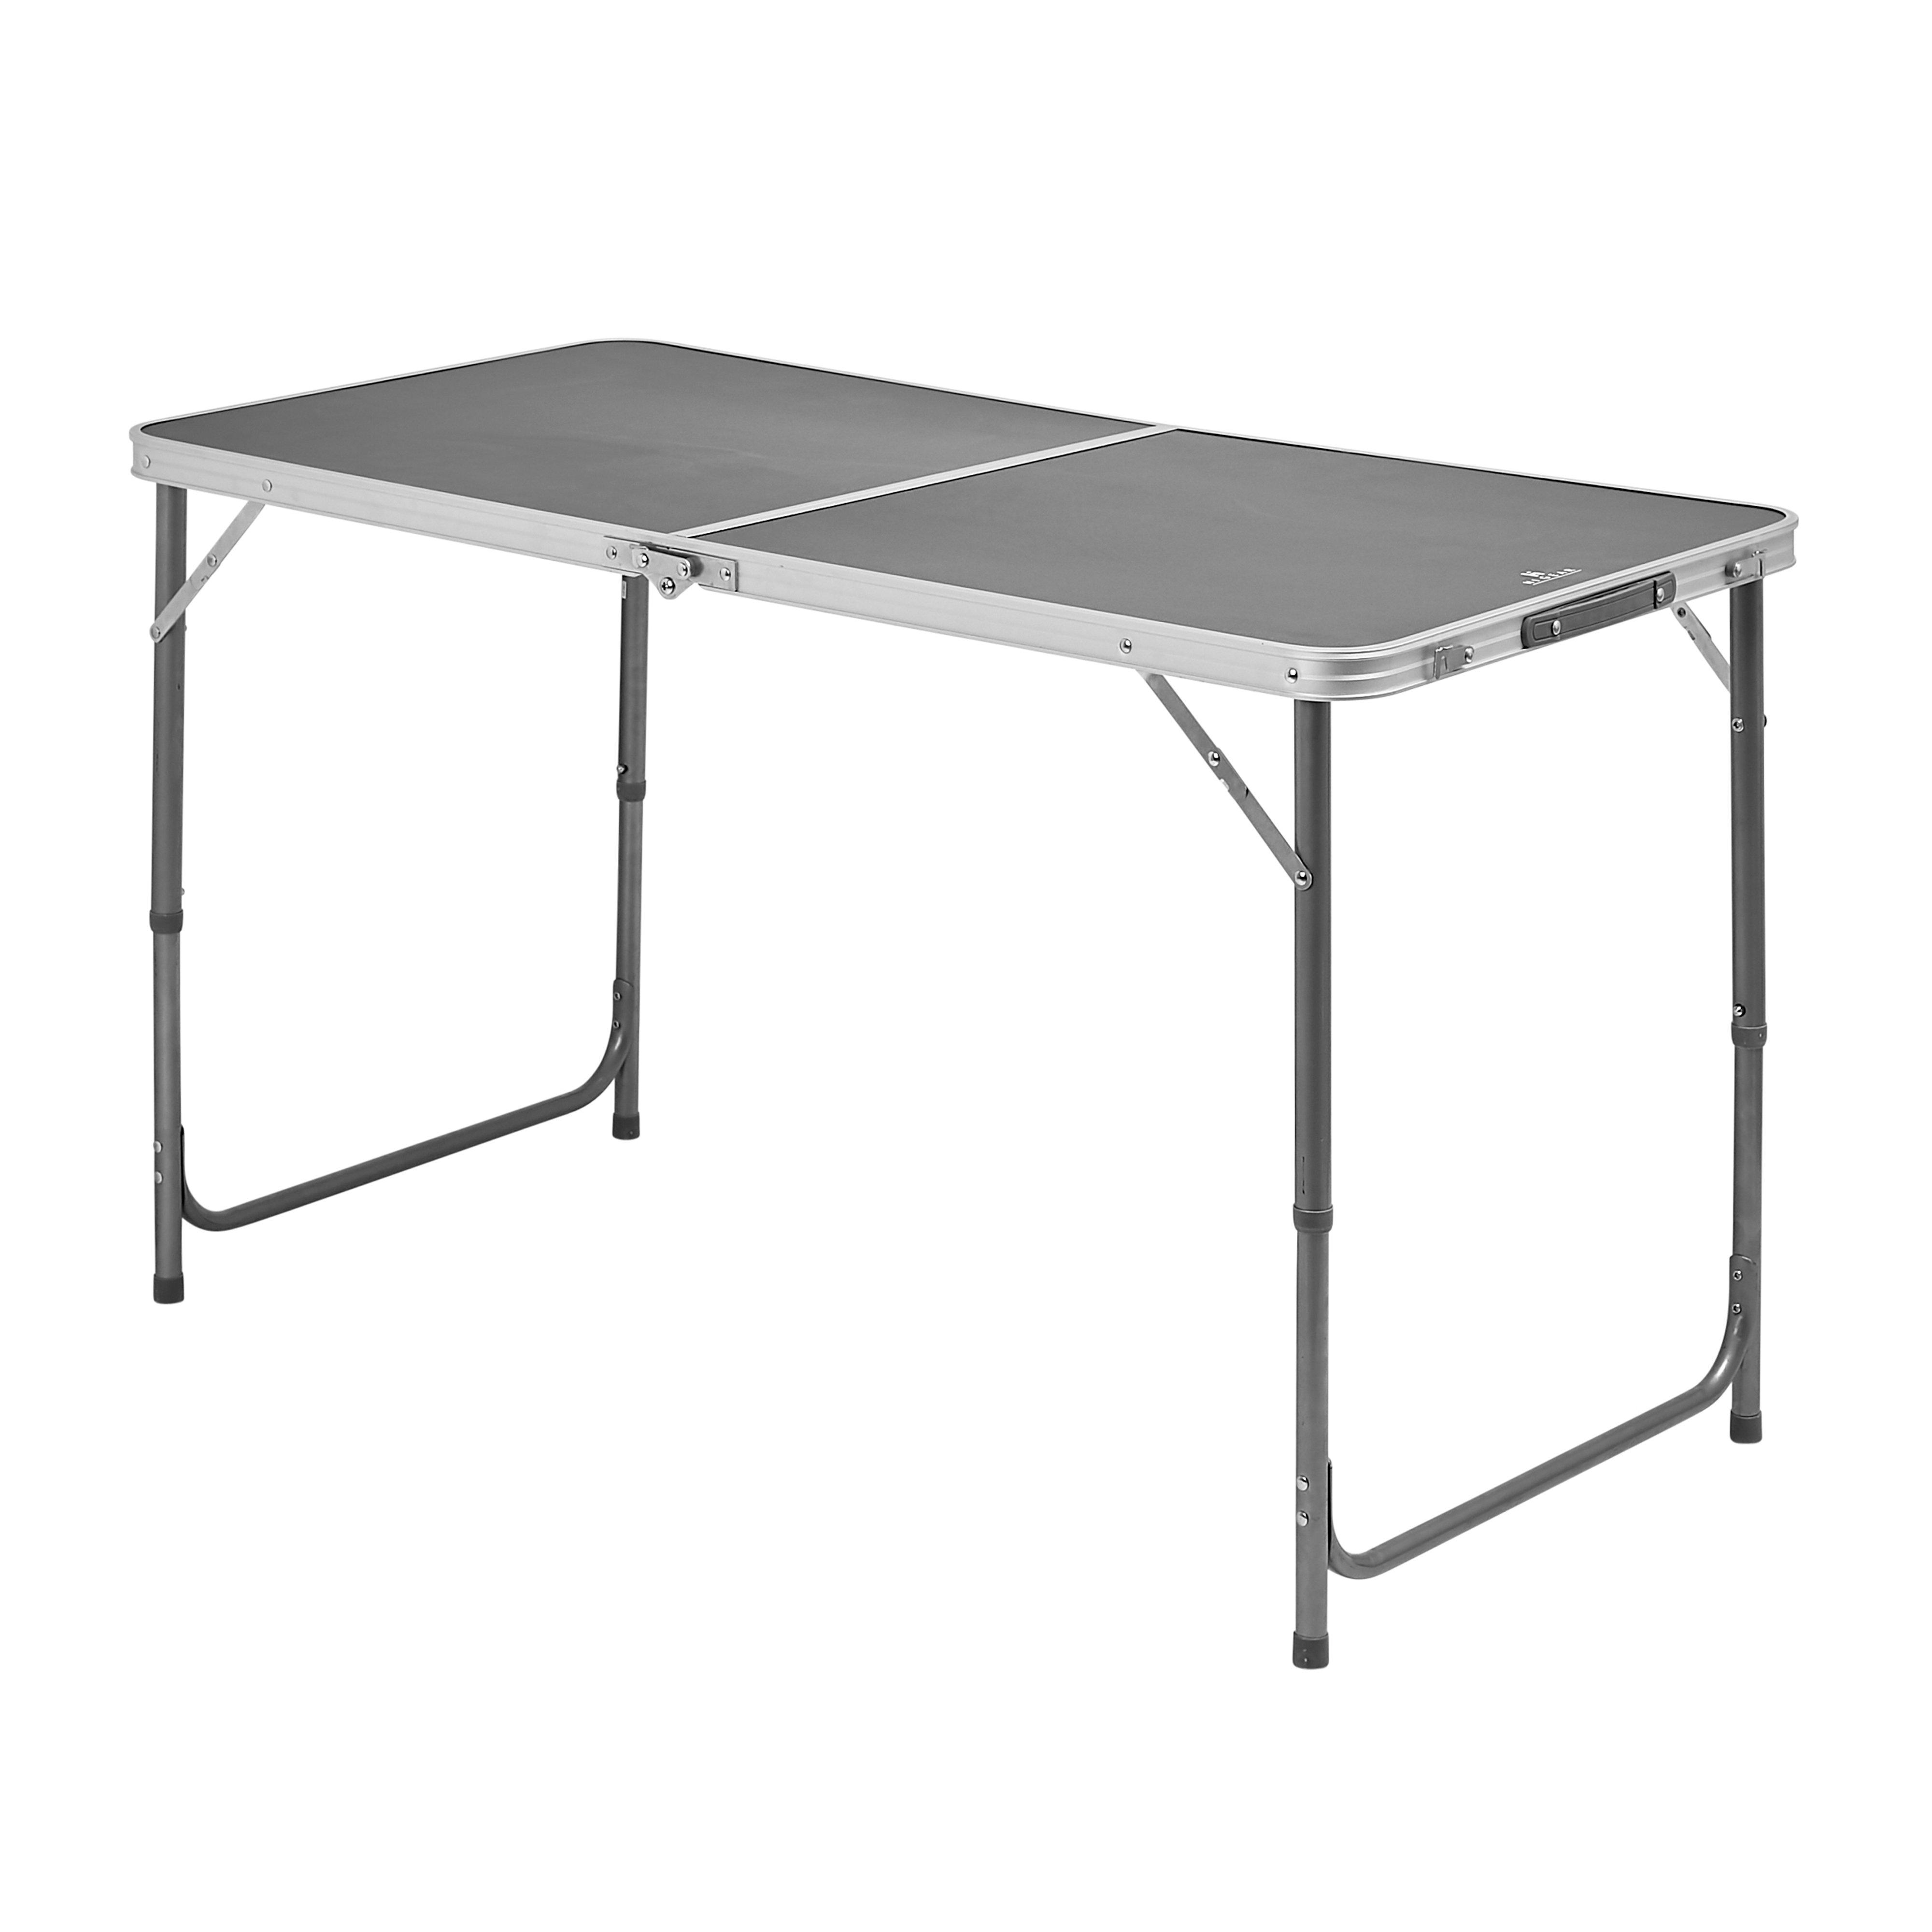 New Hi-Gear Elite Double Camping Table